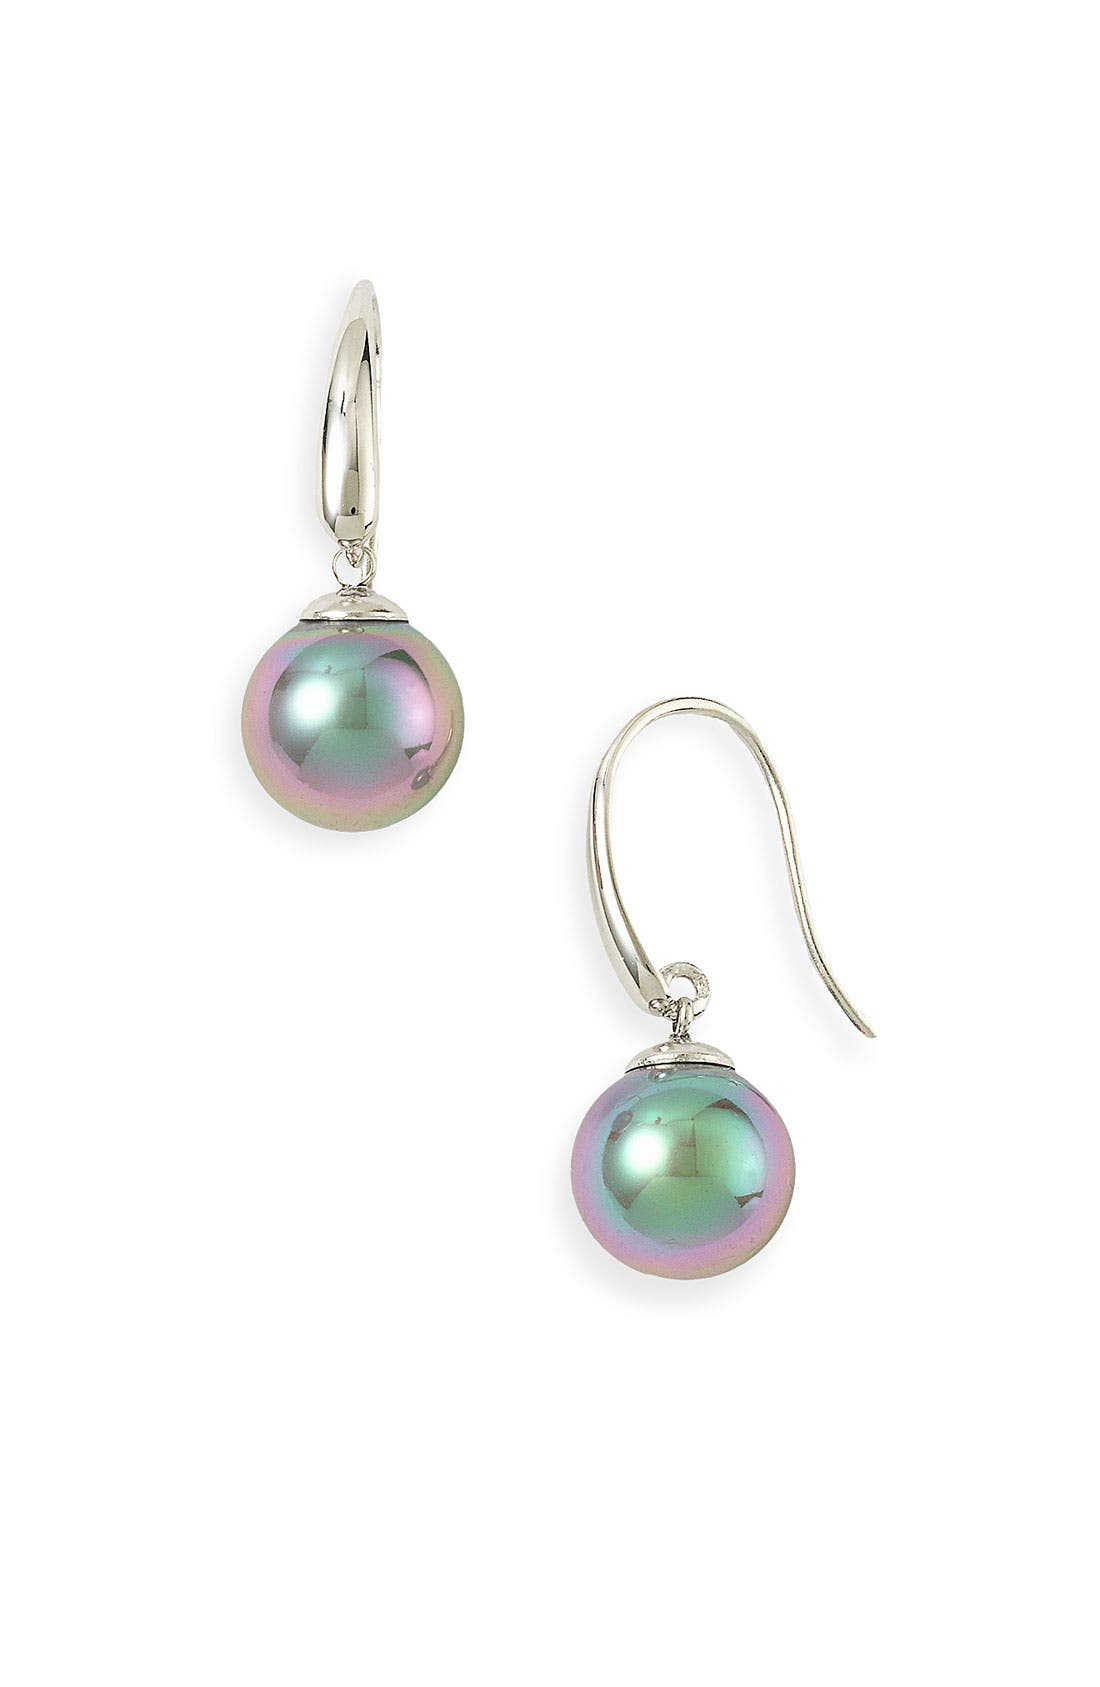 10mm Simulated Pearl Drop Earrings,                         Main,                         color, GREY/ SILVER